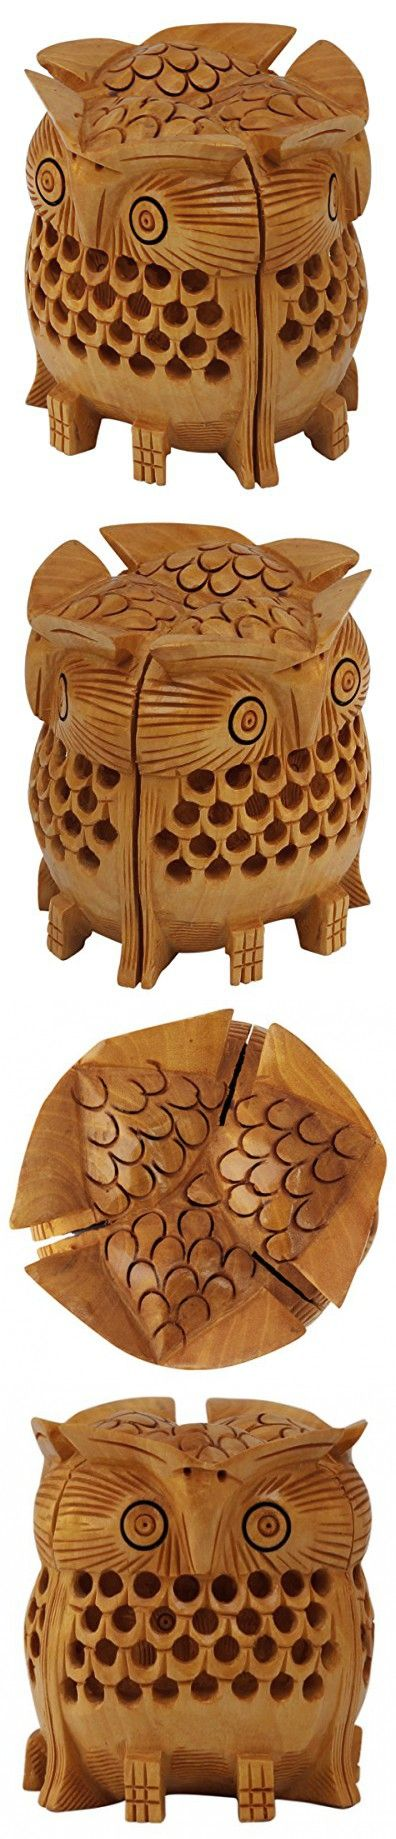 Tuesday Specials - SouvNear 3 Dimensional Wooden Owl Sculpture Hand Carved Bird Filigree Statuette & Figurines - Home & Office Decor Accessories